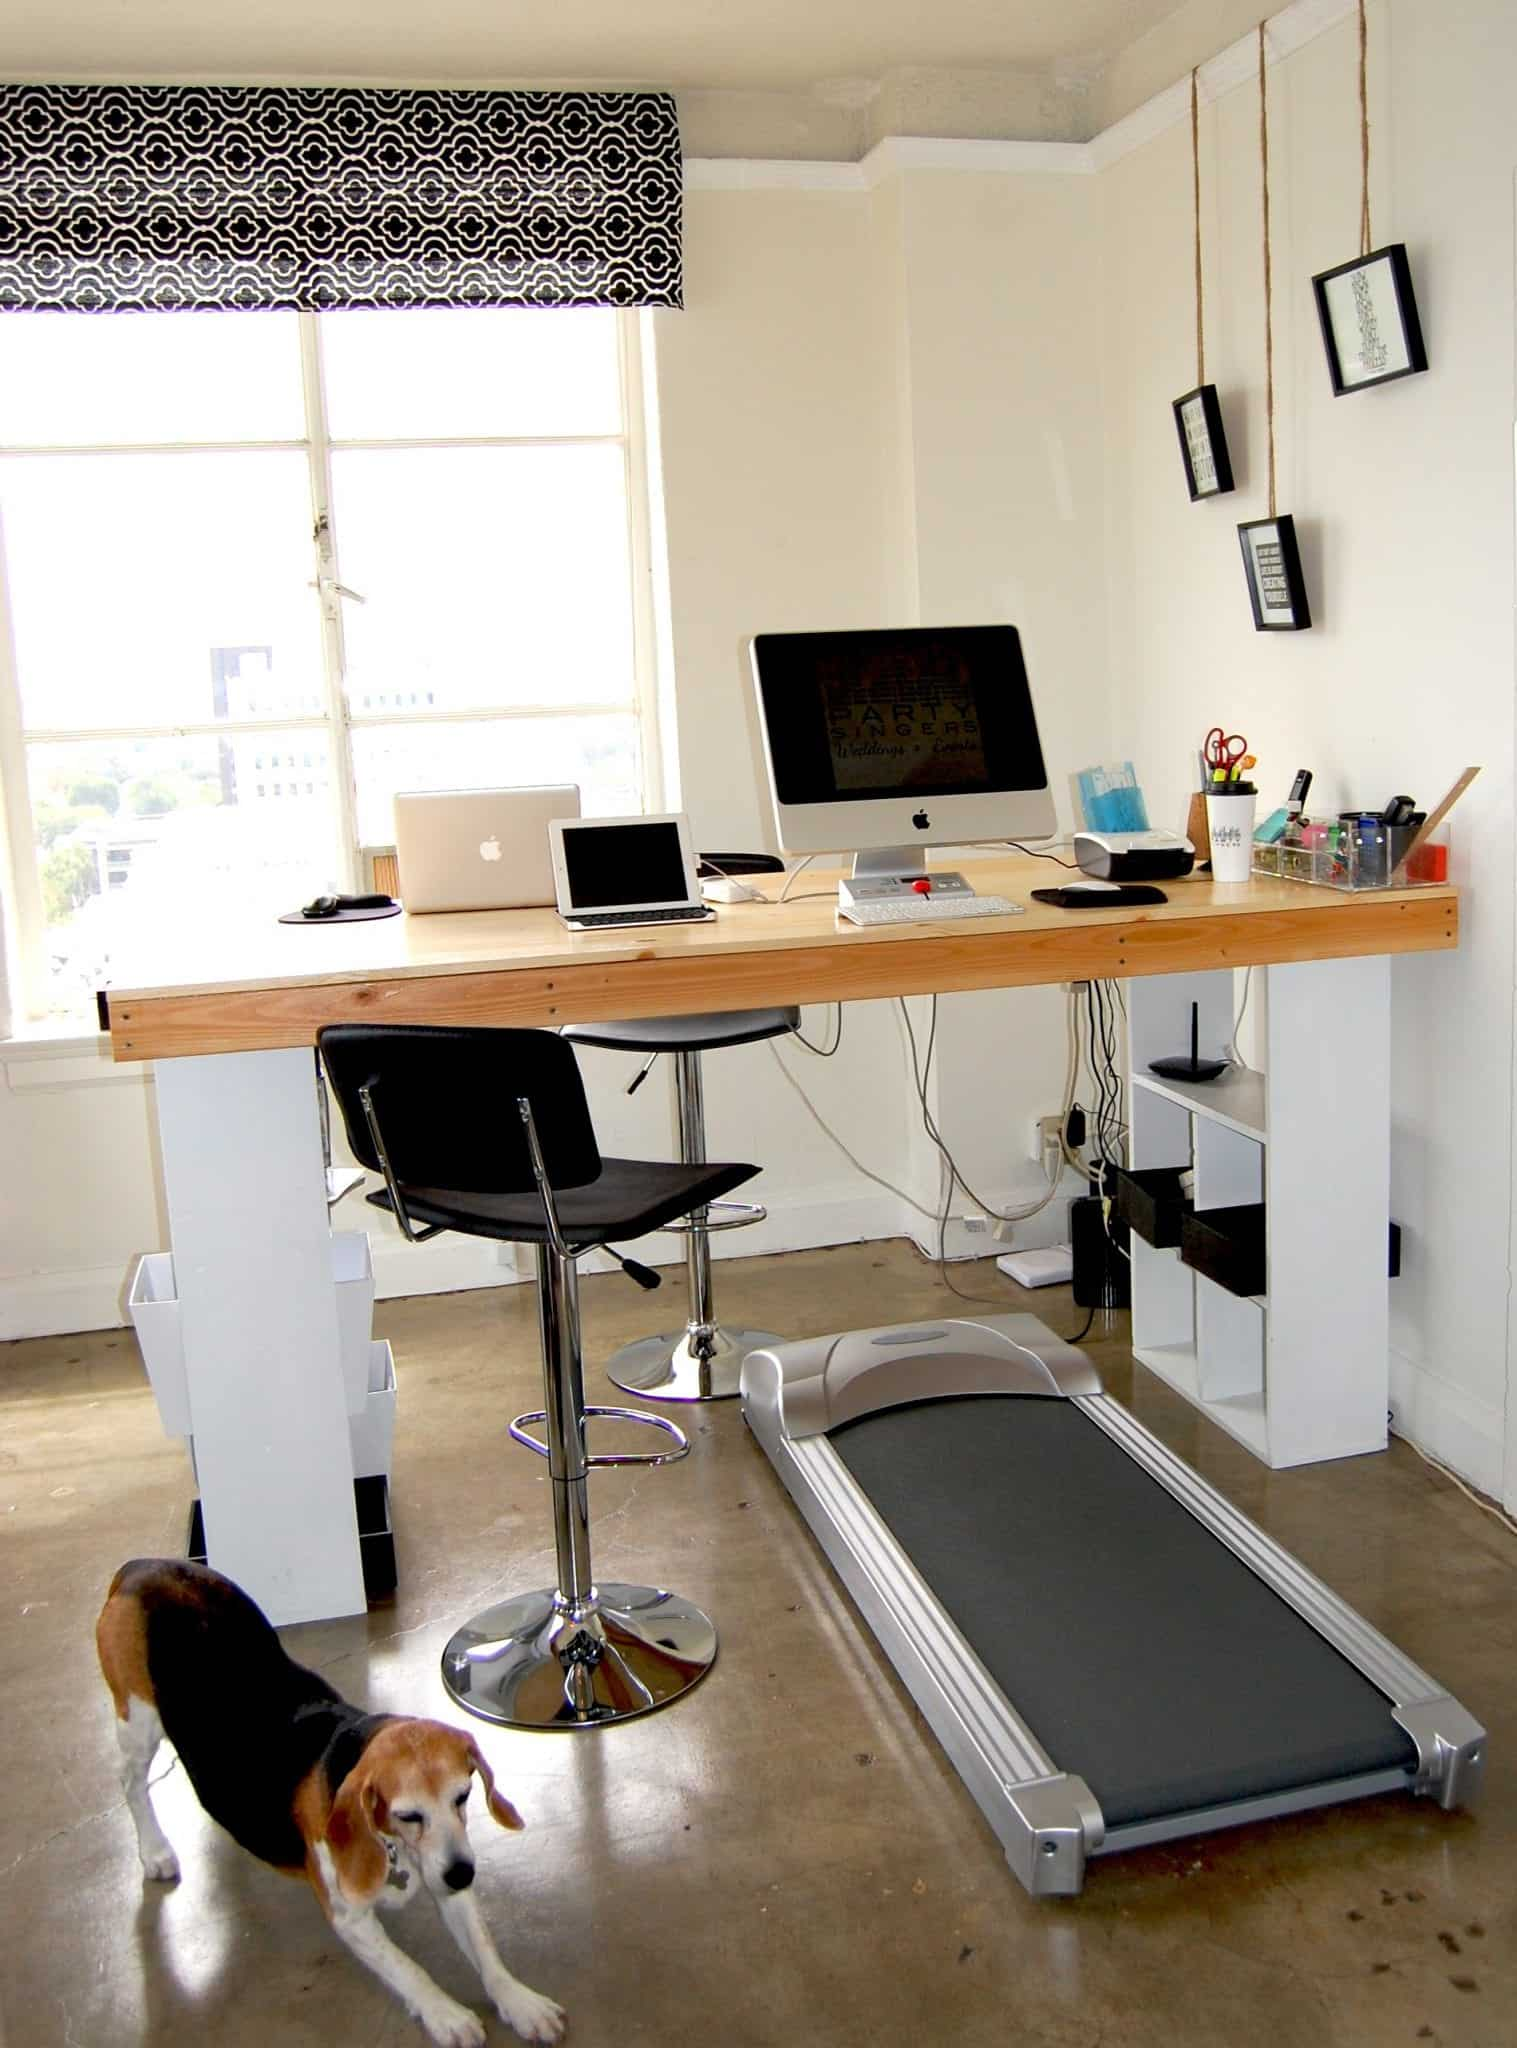 diy-treadmill-desk-standing-desk